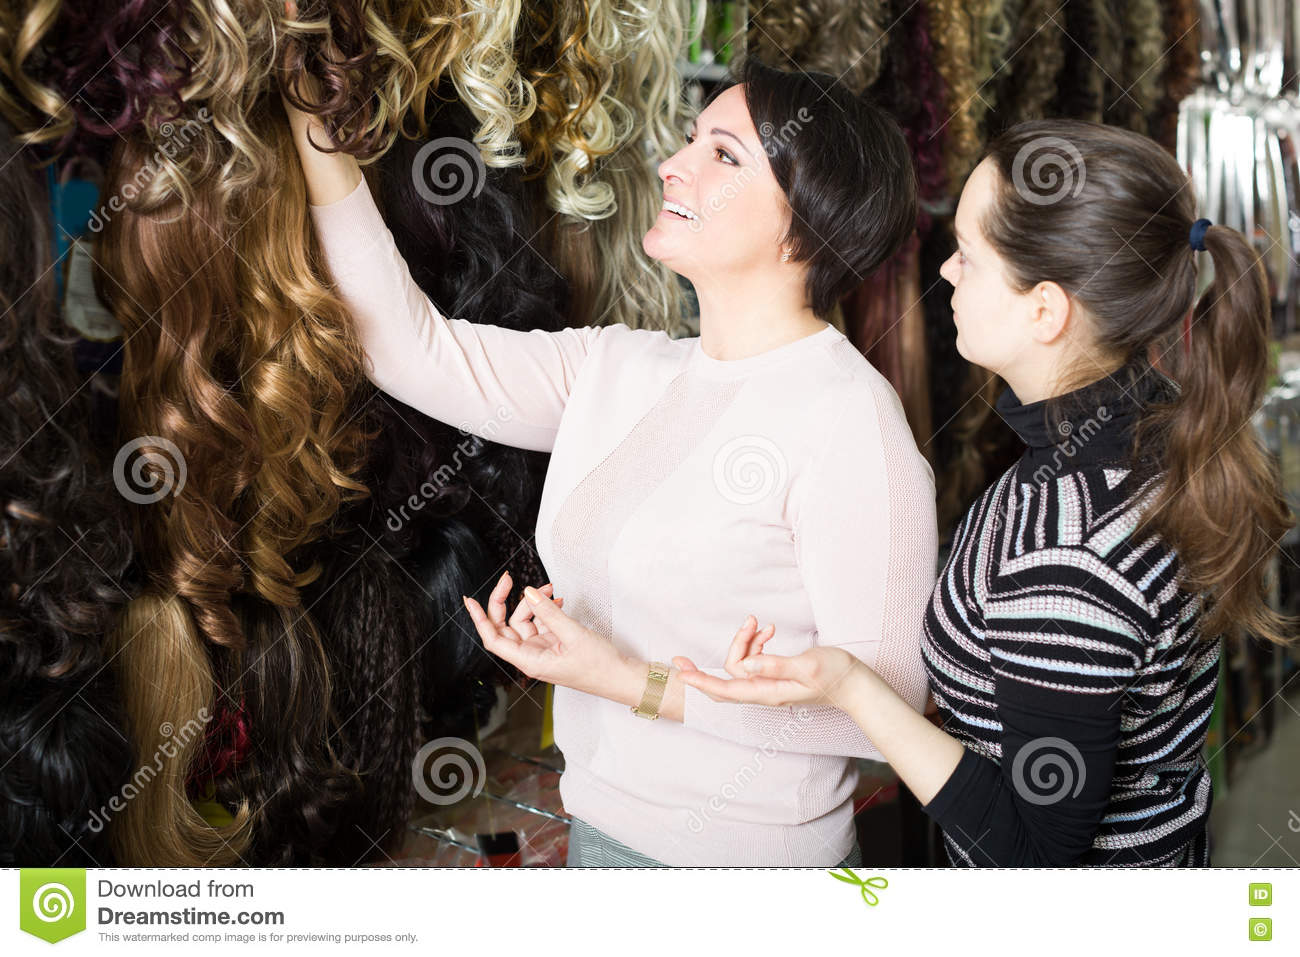 Women Buying Clip-in Natural Hair Extension Stock Image - Image of ... 993264385